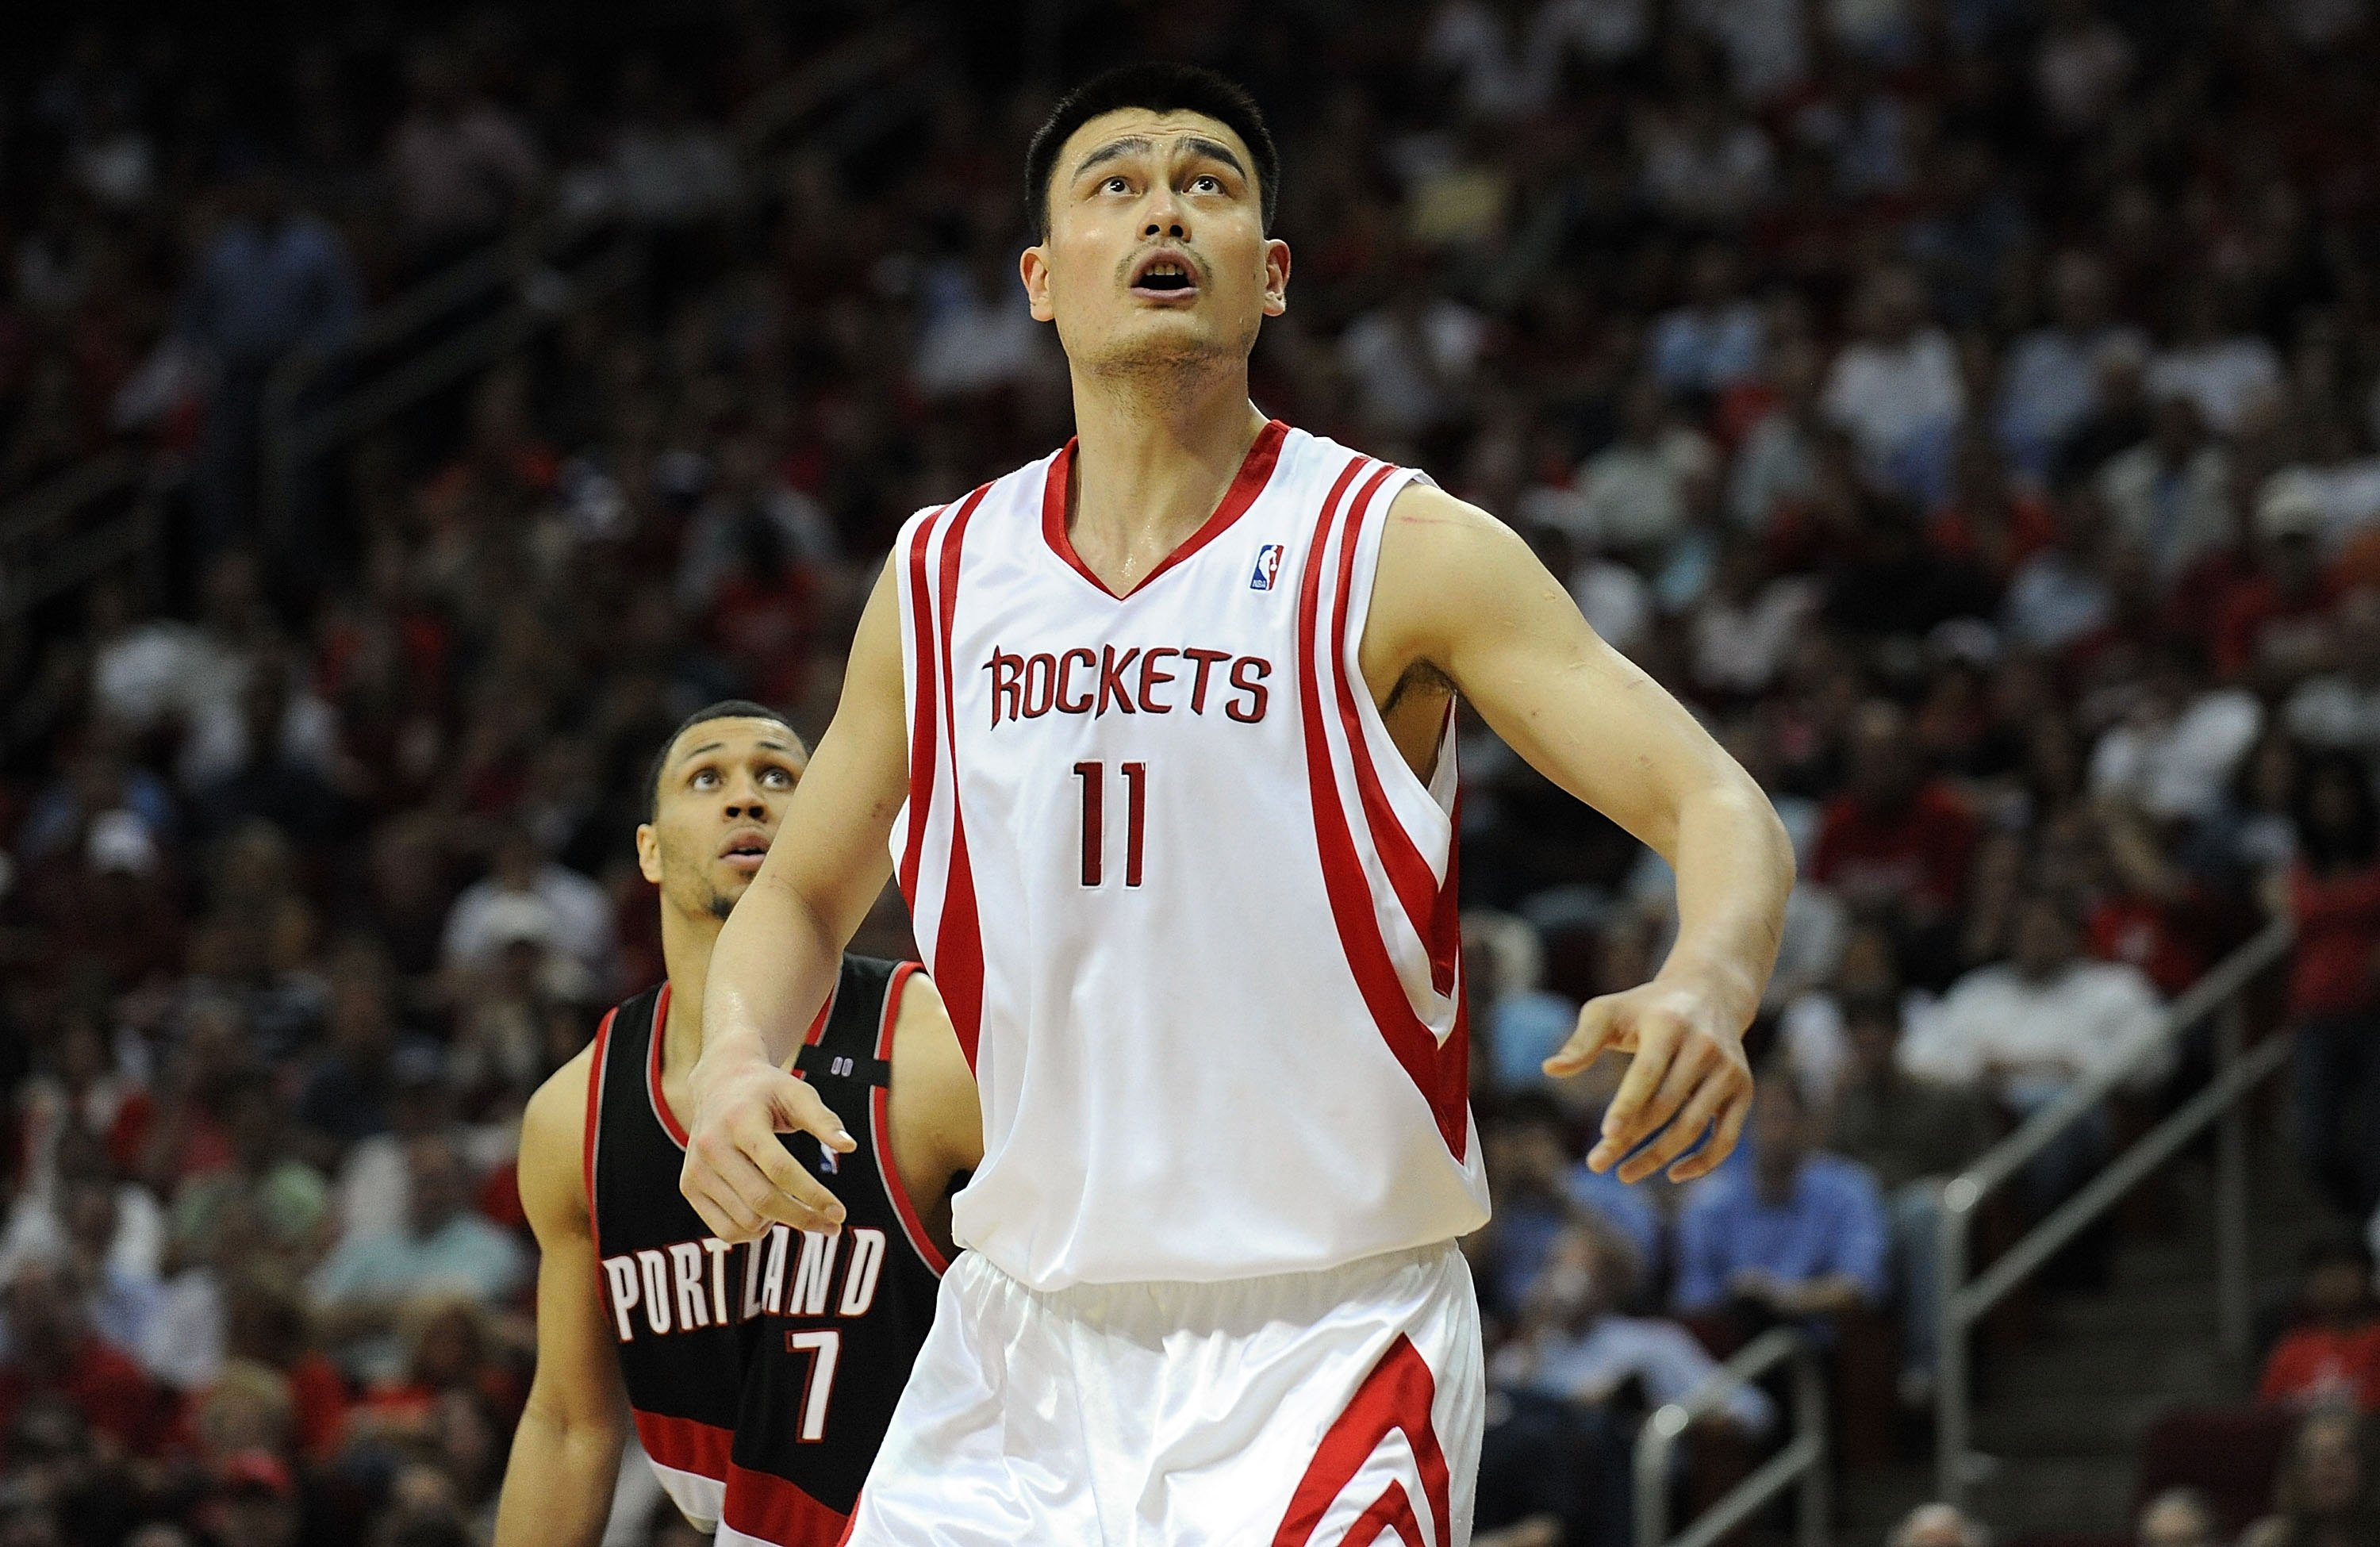 meet f7ee2 2d376 NBA Free Agency 2011: Yao Ming and the Top 10 Centers ...